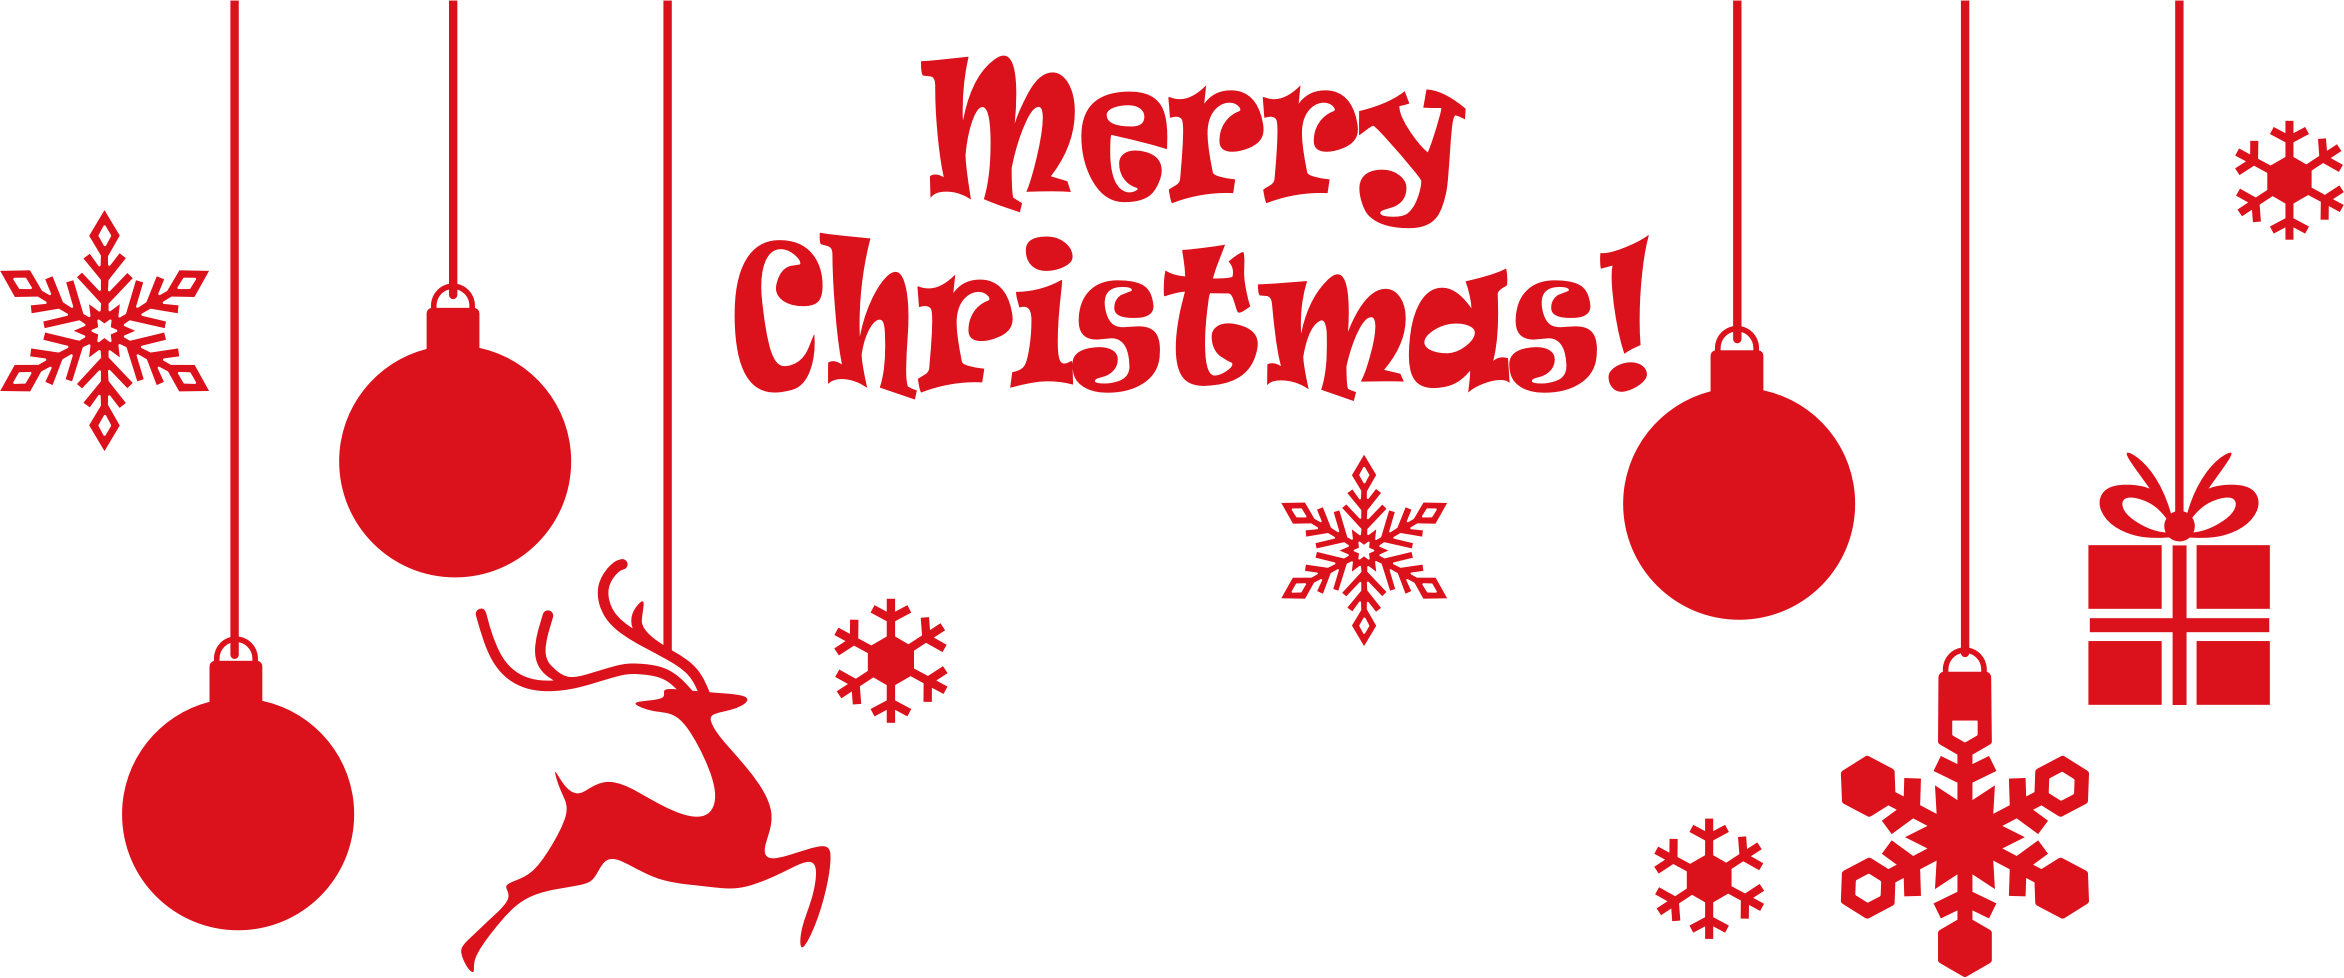 This free Icons Png design of Merry Christmas Ornamental